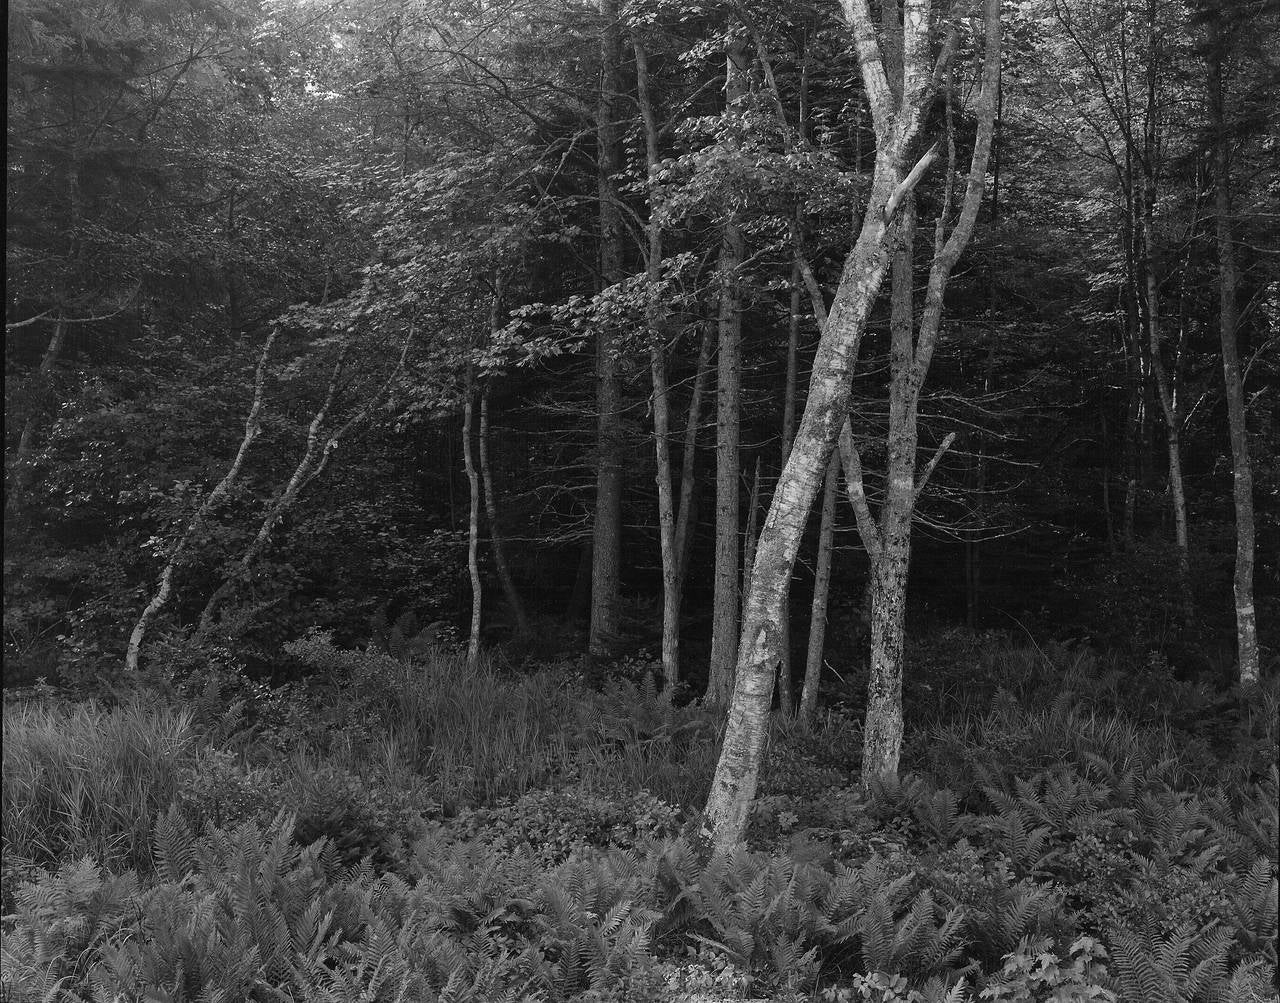 Woods, Port Clyde, Maine